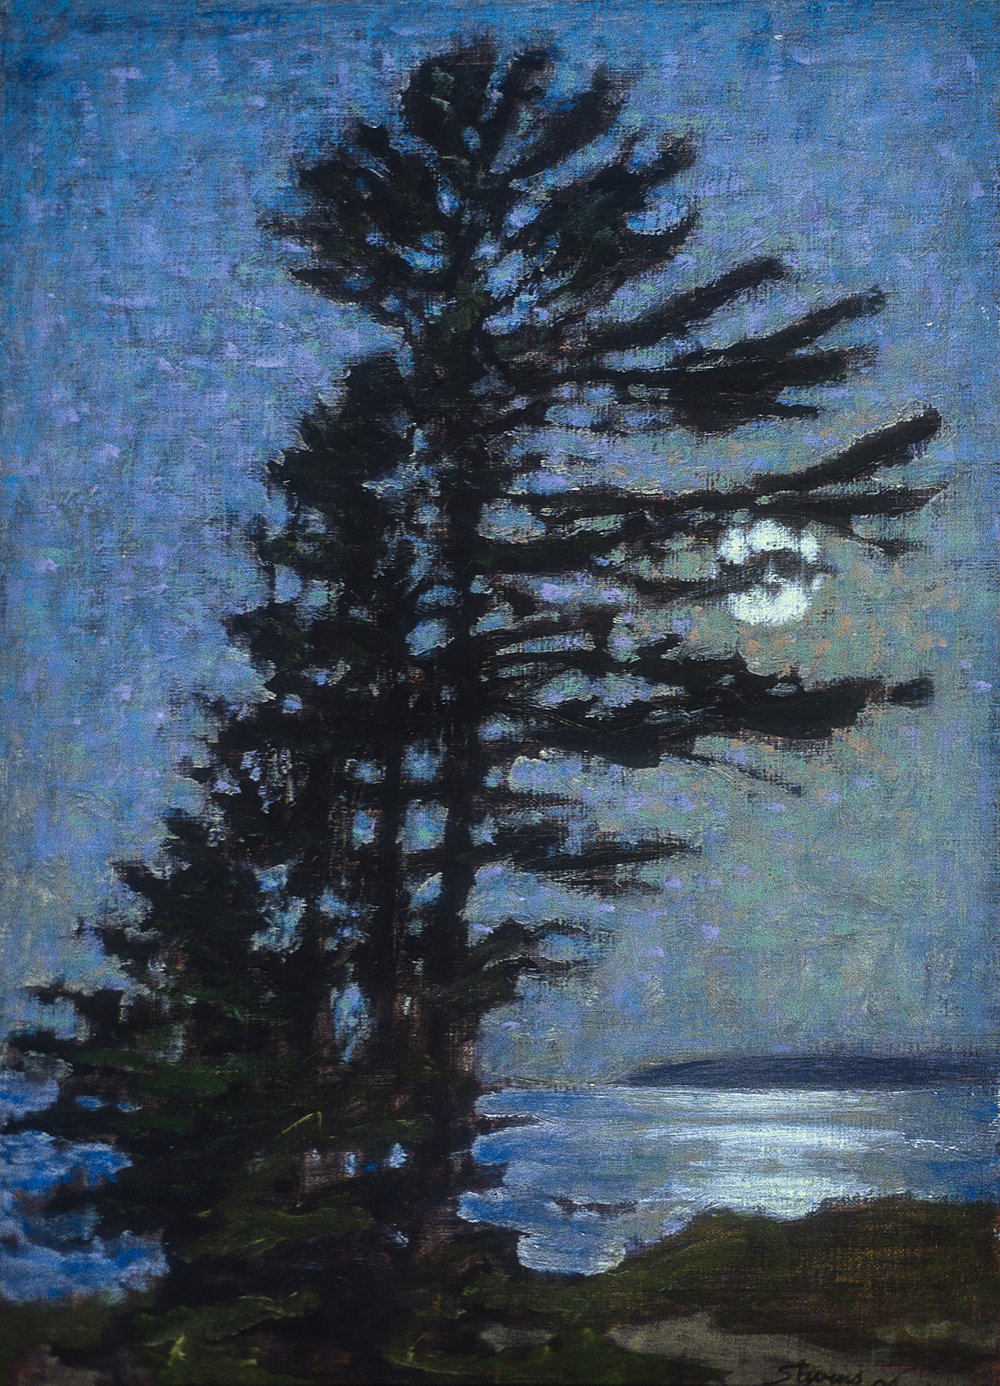 Nocturne  | oil on linen | 18 x 12"